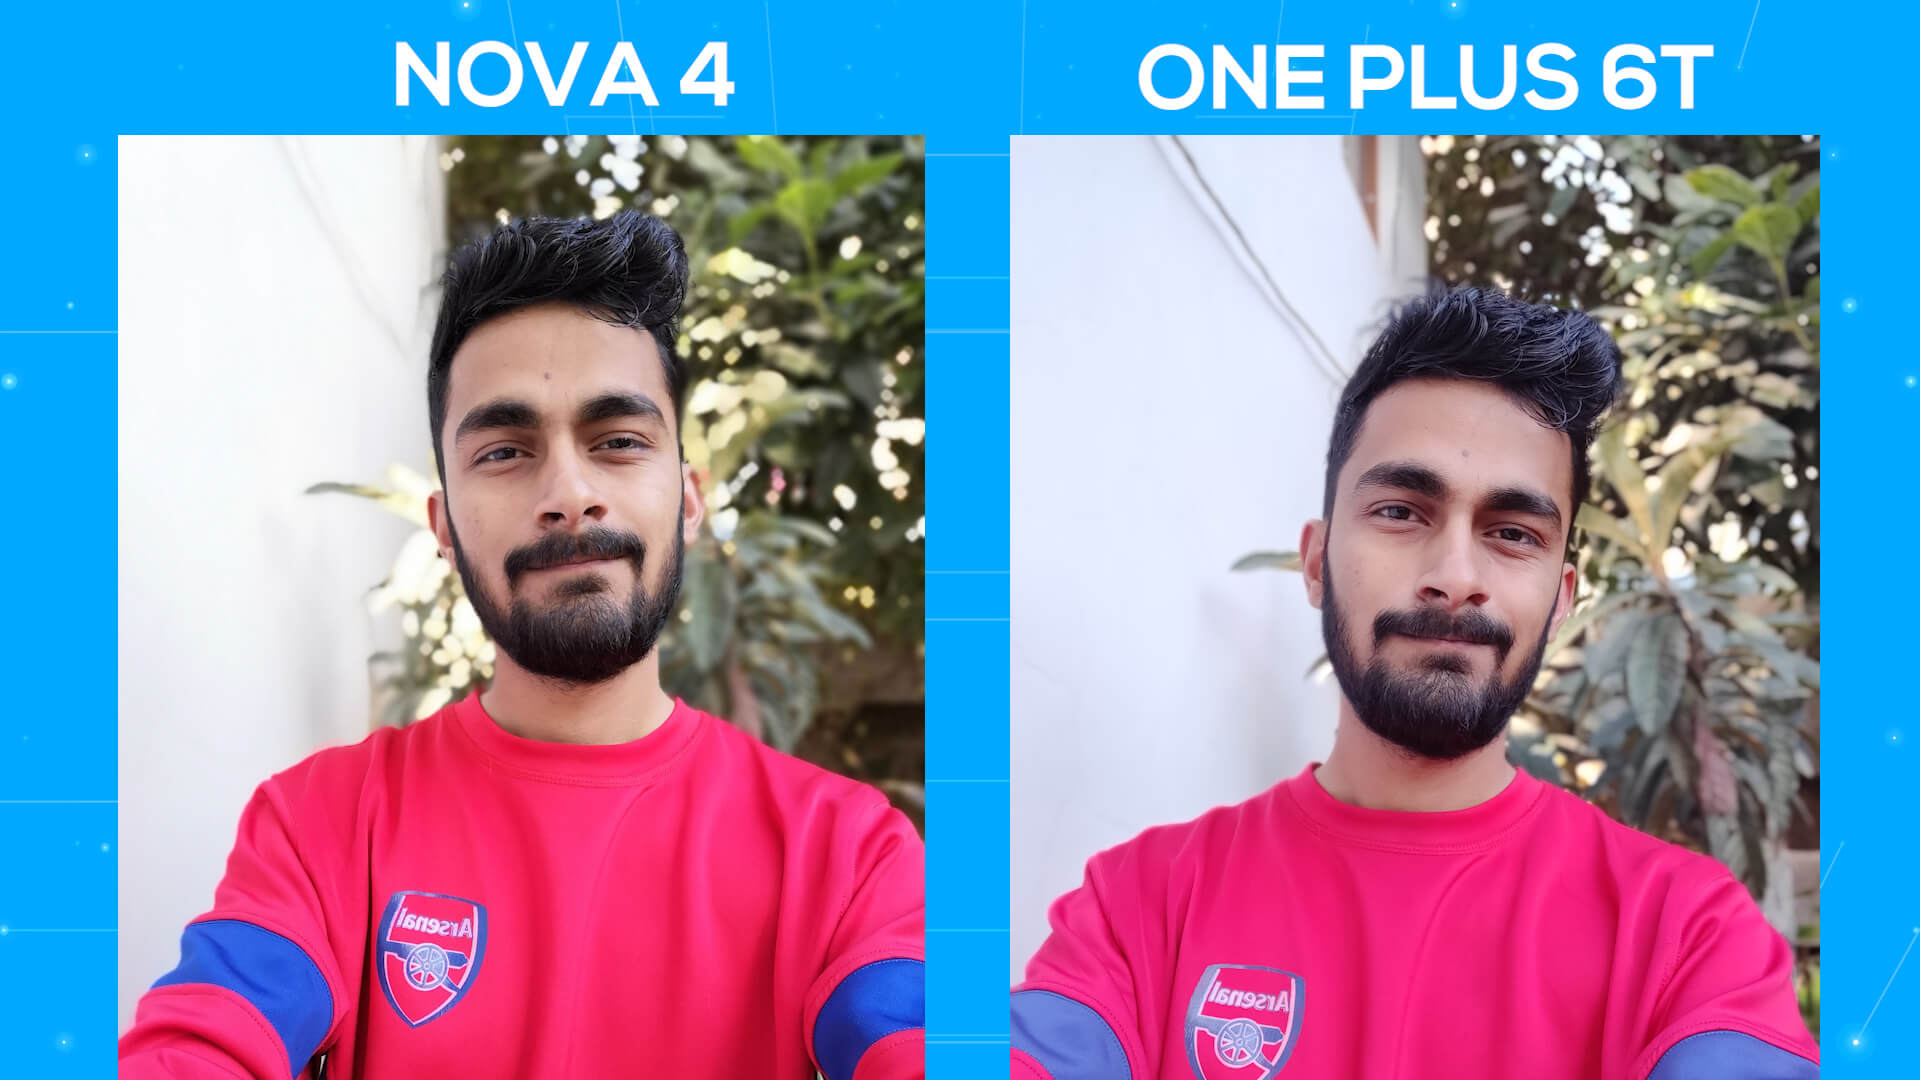 Huawei Nova 4 vs OnePlus 6T camera comparison portrait selfie